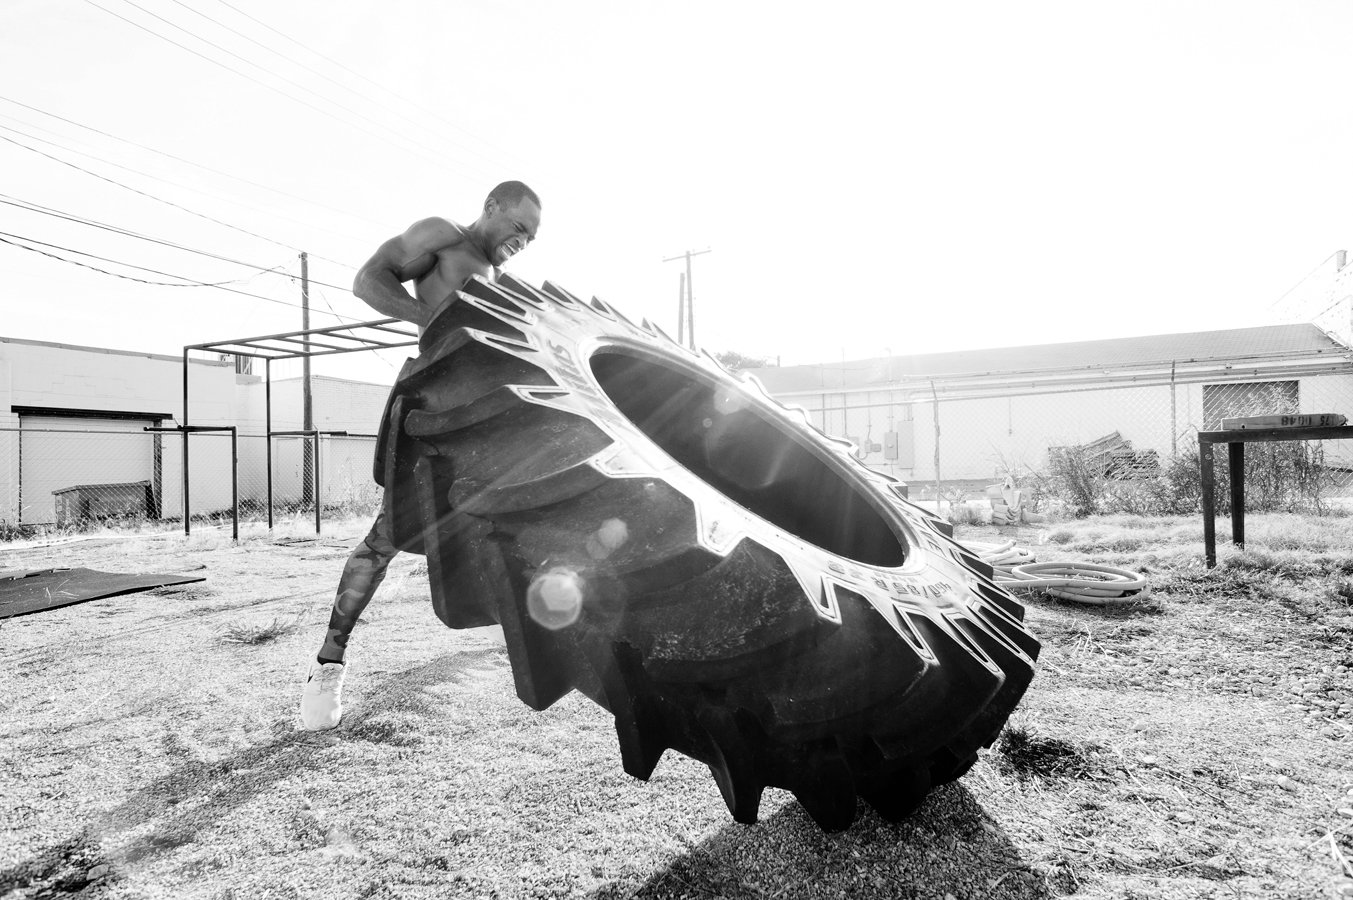 Fit black man working out outside shirtless flipping tires.   Kenneth M. Ruggiano is a photographer specializing in Sports and Fitness Photography based in Tulsa Oklahoma.